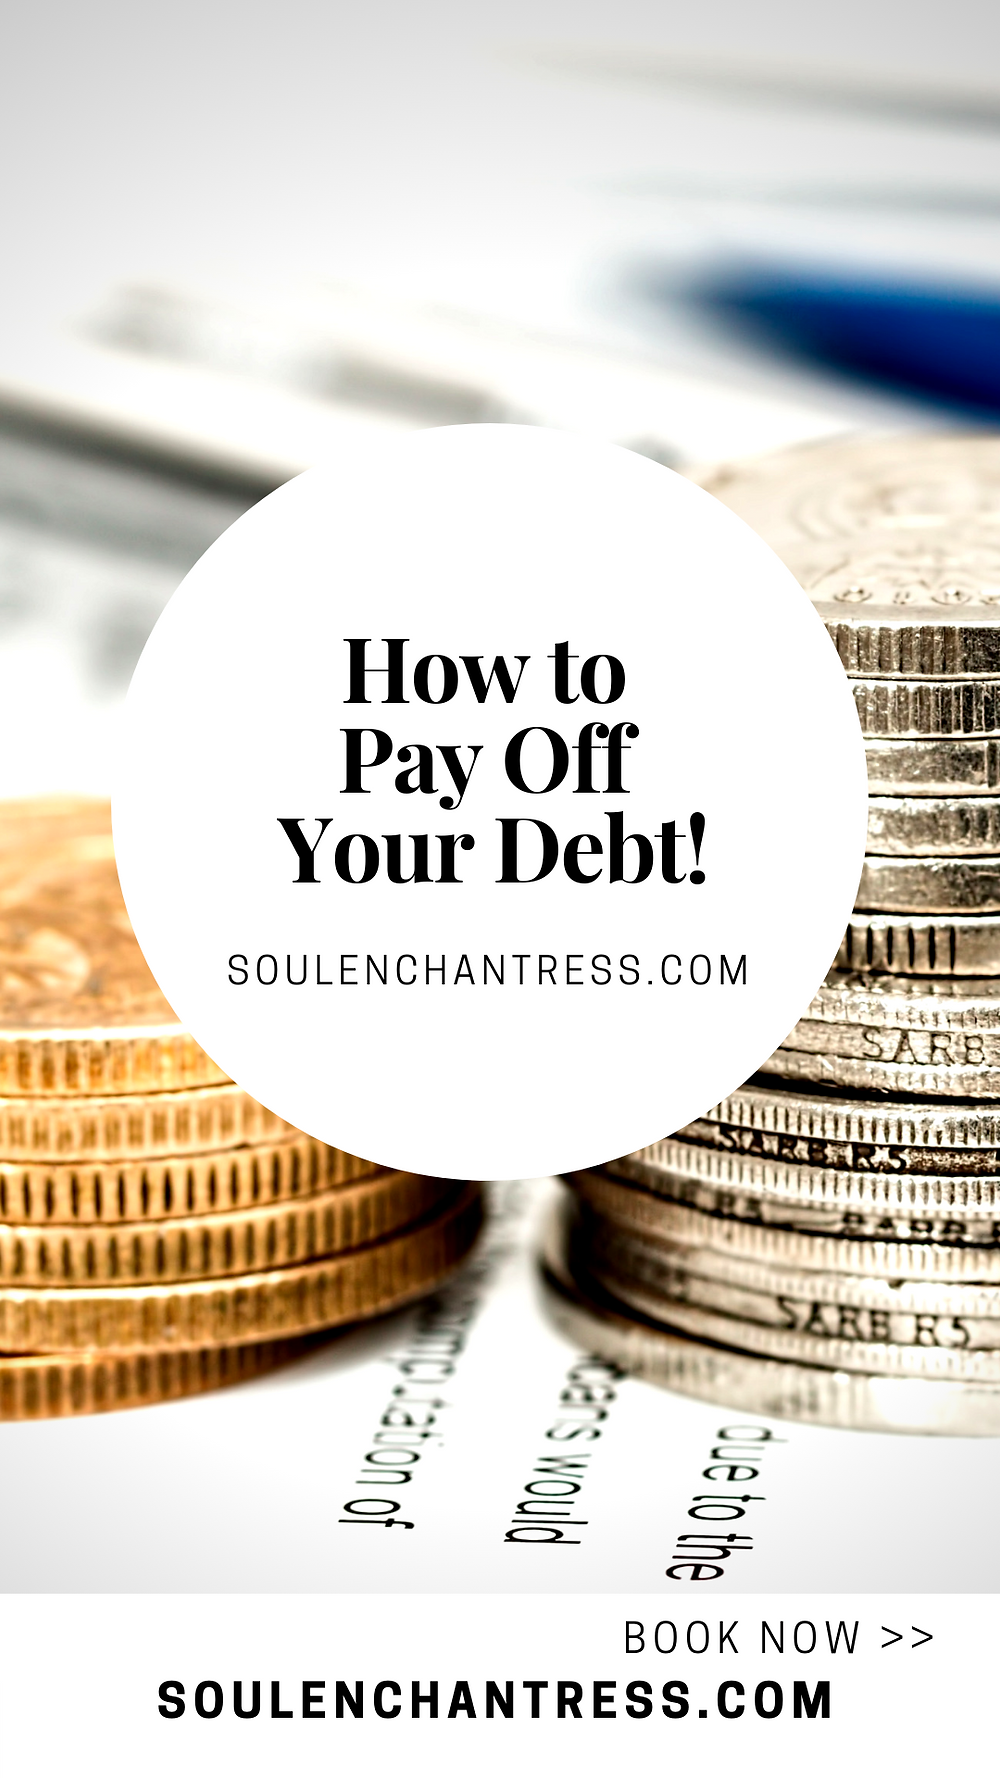 how to pay off credit card debt, clearing debt, attract money, soul enchantress